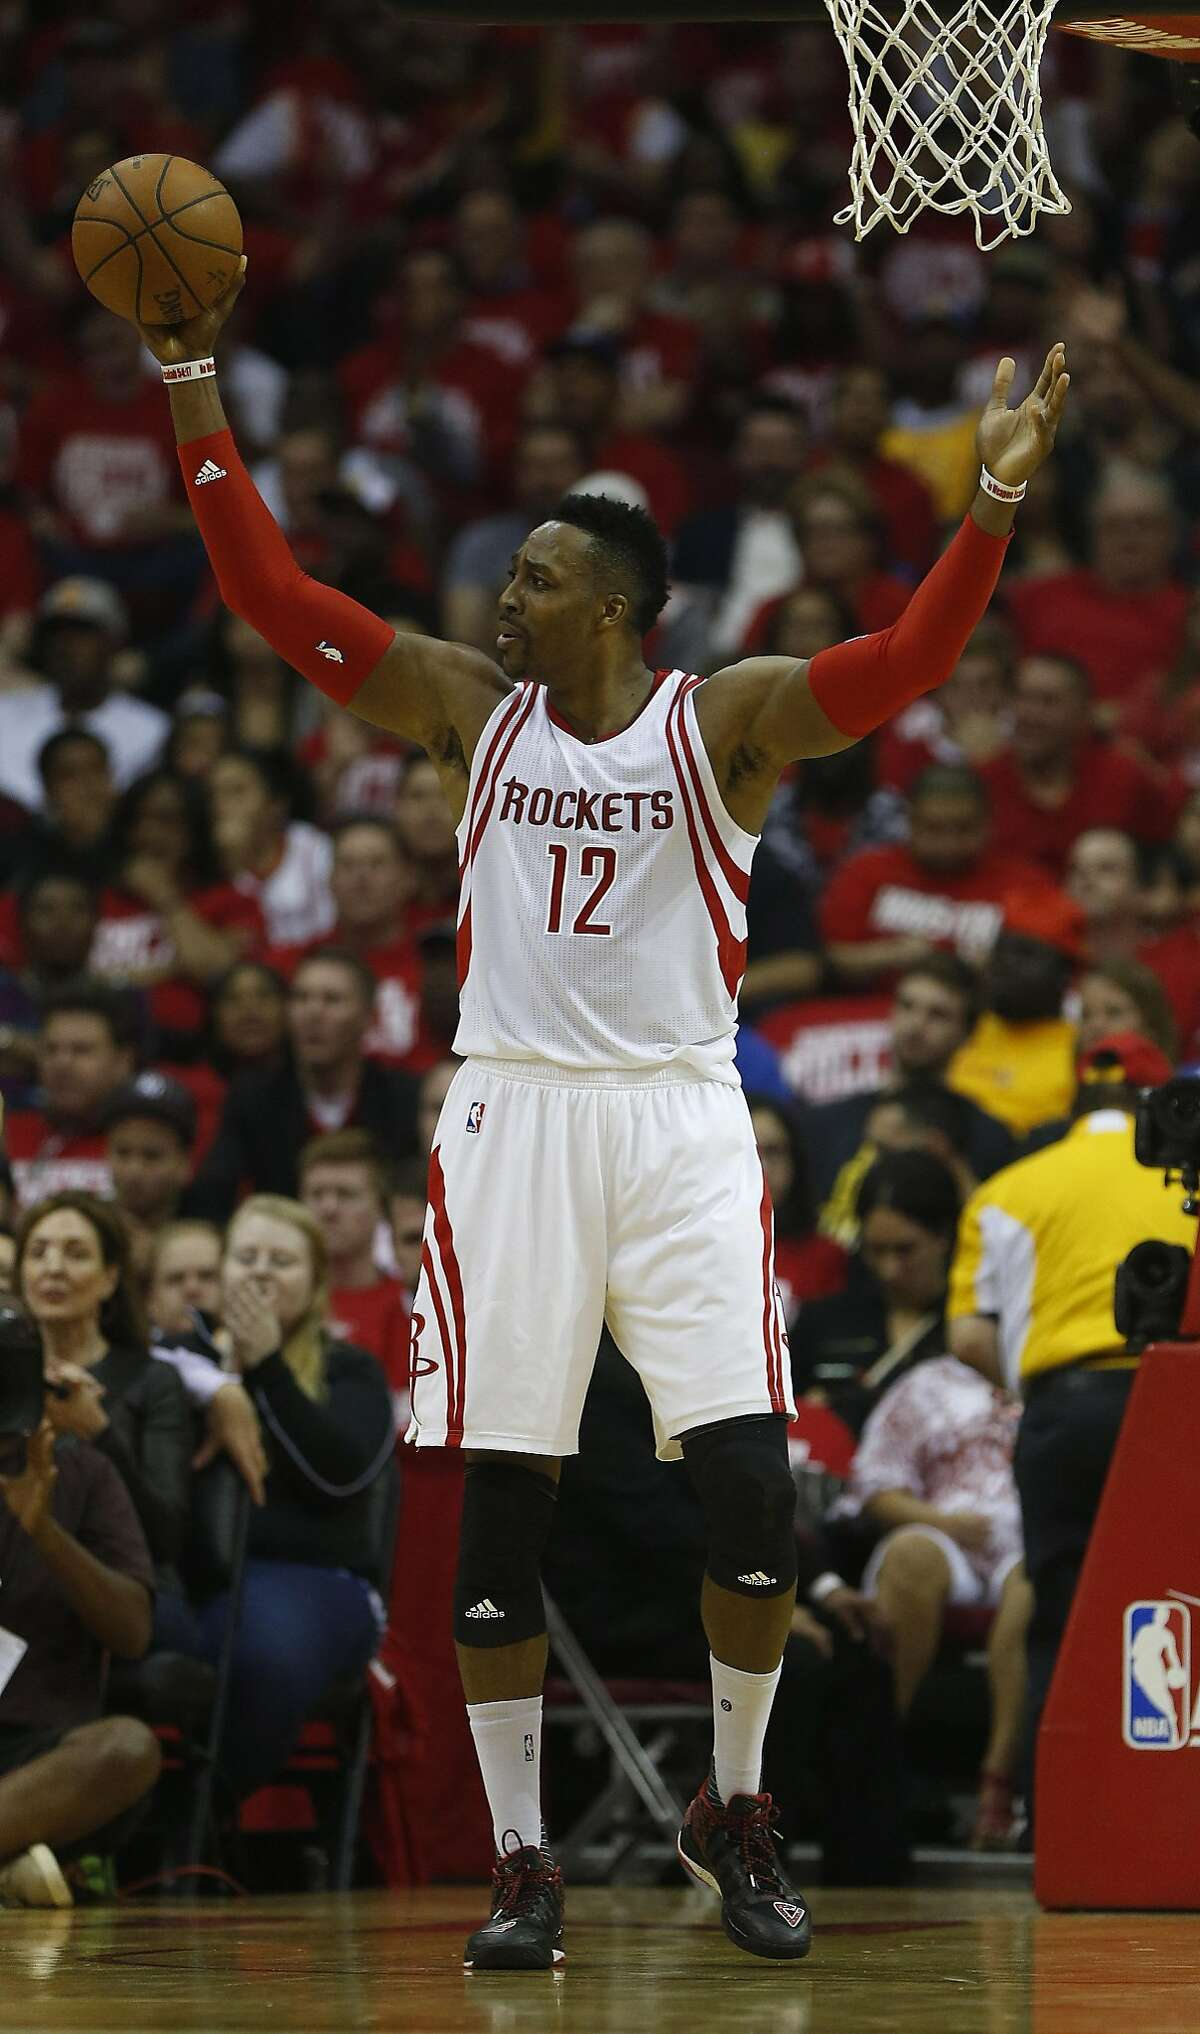 Houston Rockets center Dwight Howard (12) reacts after being called for a foul during the first half in game three of a first-round NBA playoffs series at Toyota Center, Thursday, April 21, 2016, in Houston. ( Karen Warren / Houston Chronicle )